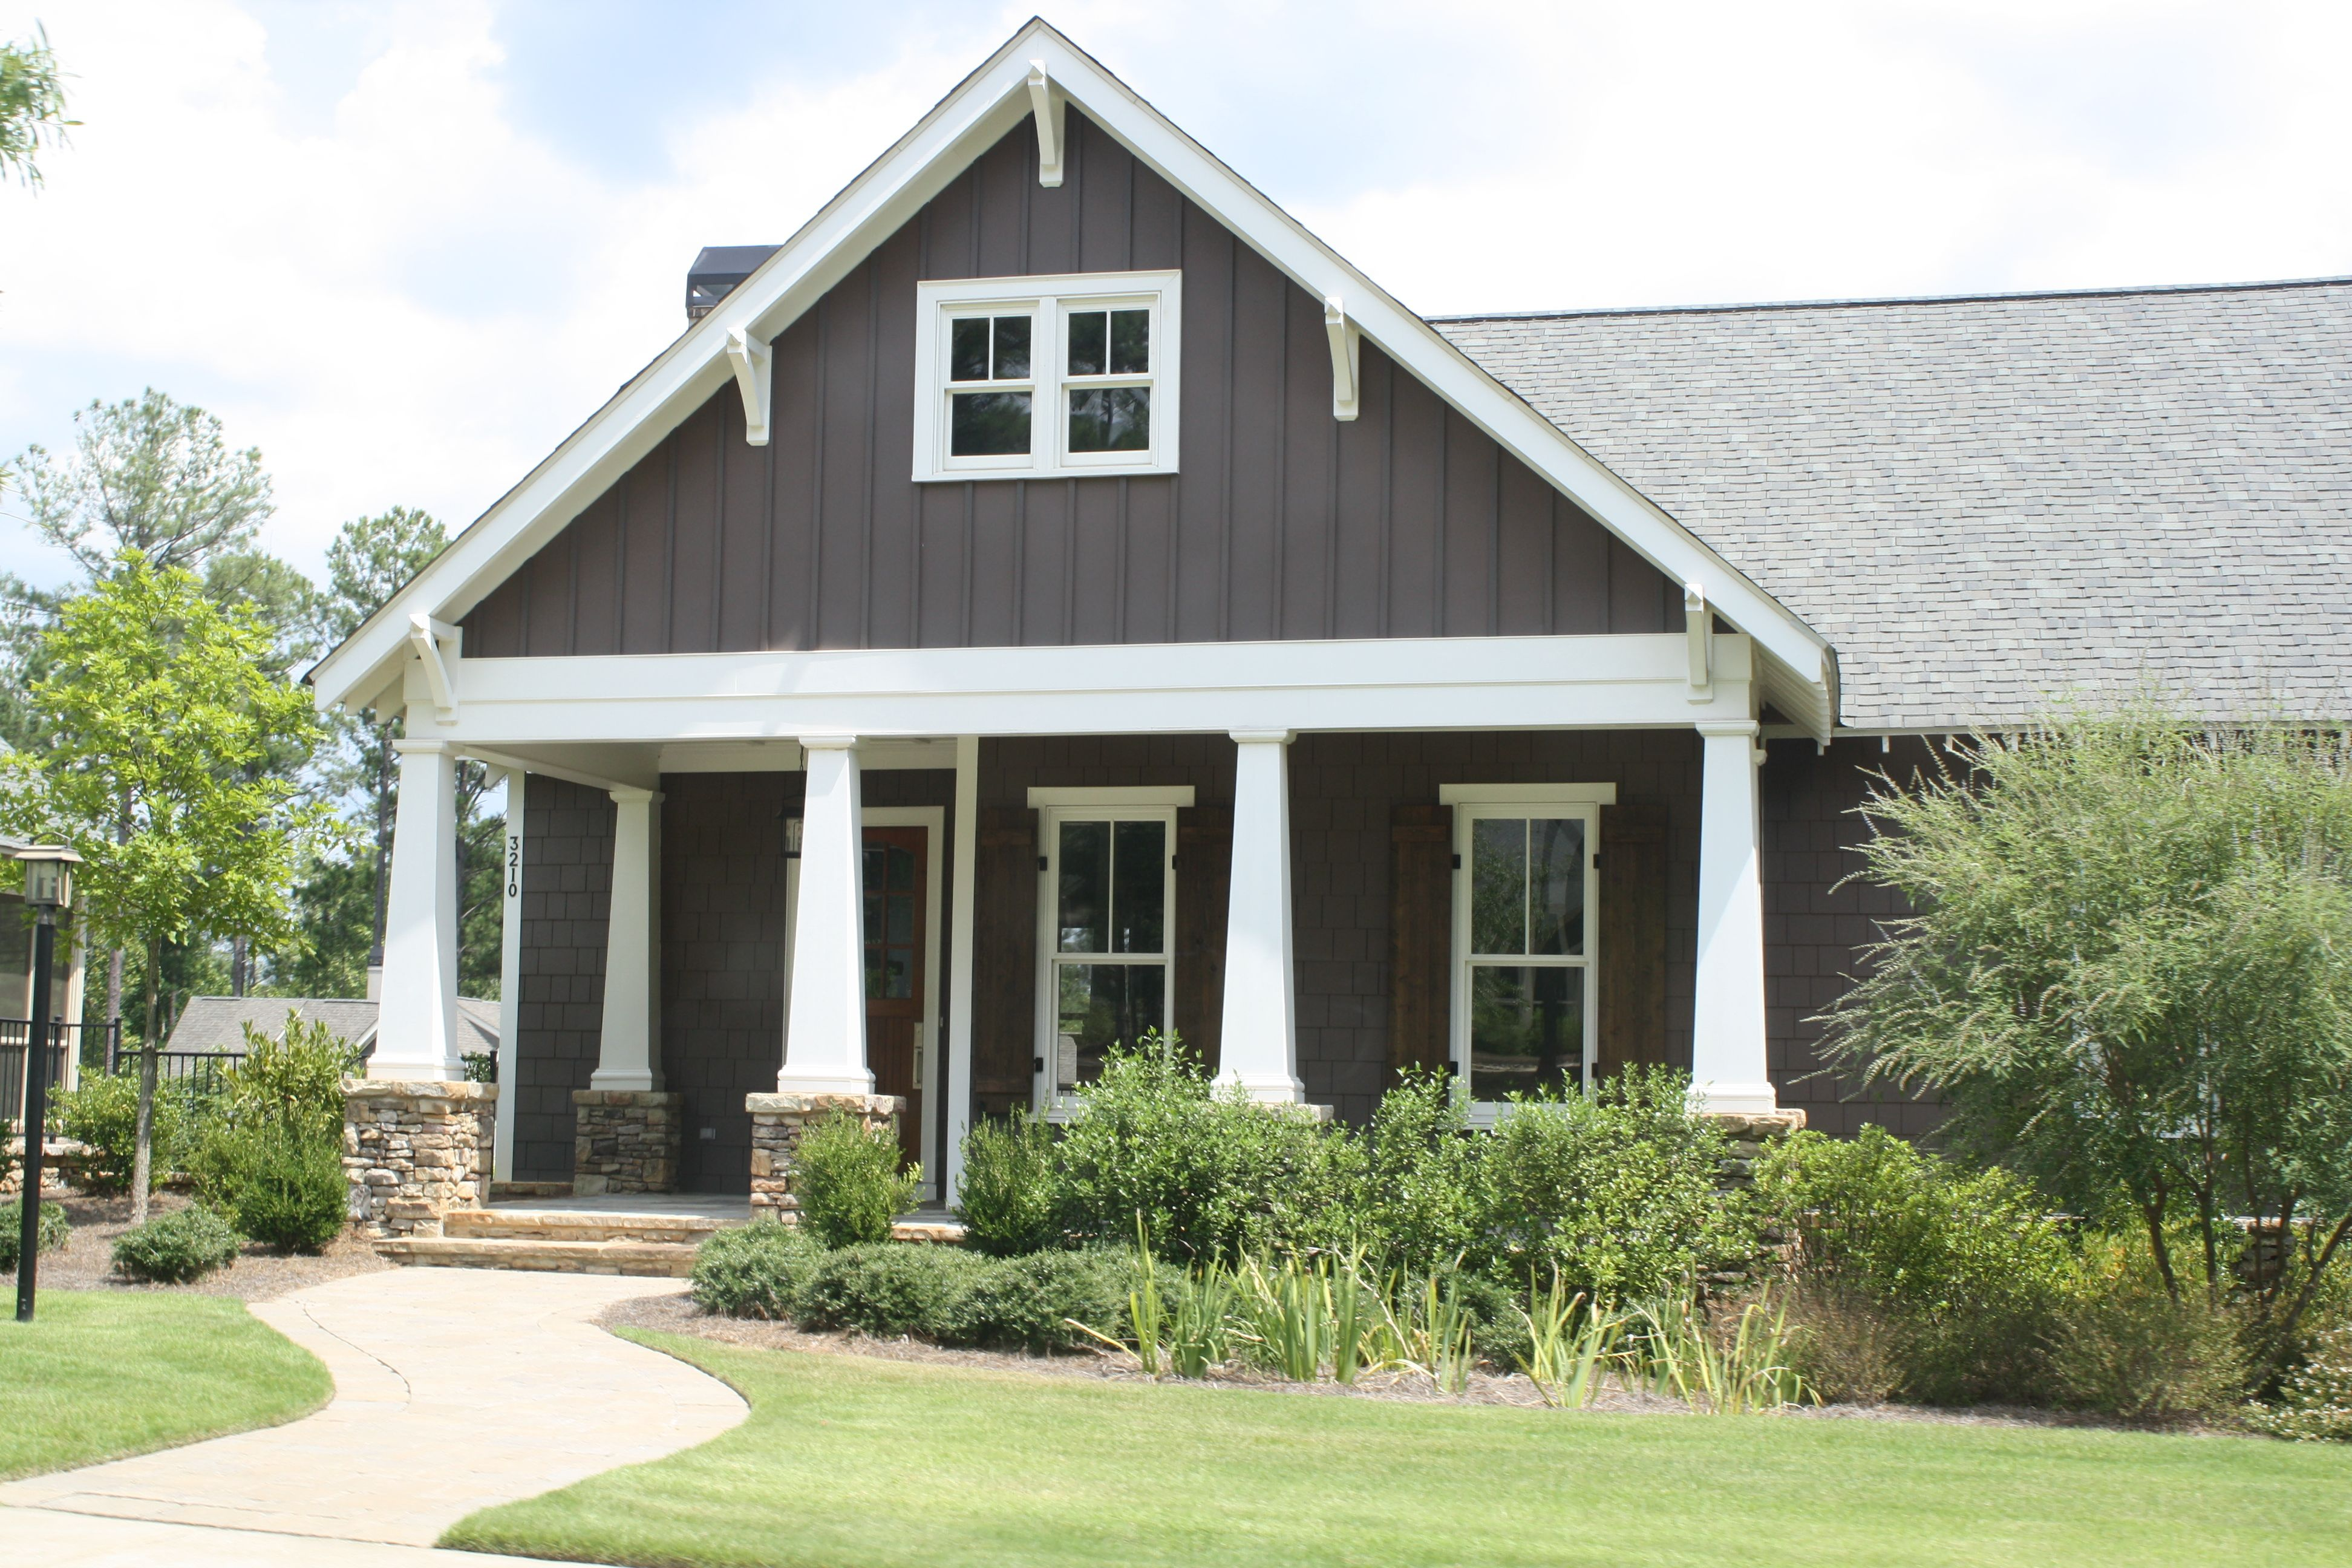 House colors on pinterest paint colors craftsman and james hardie - I Like The Board And Batten Upper Shingle Lower